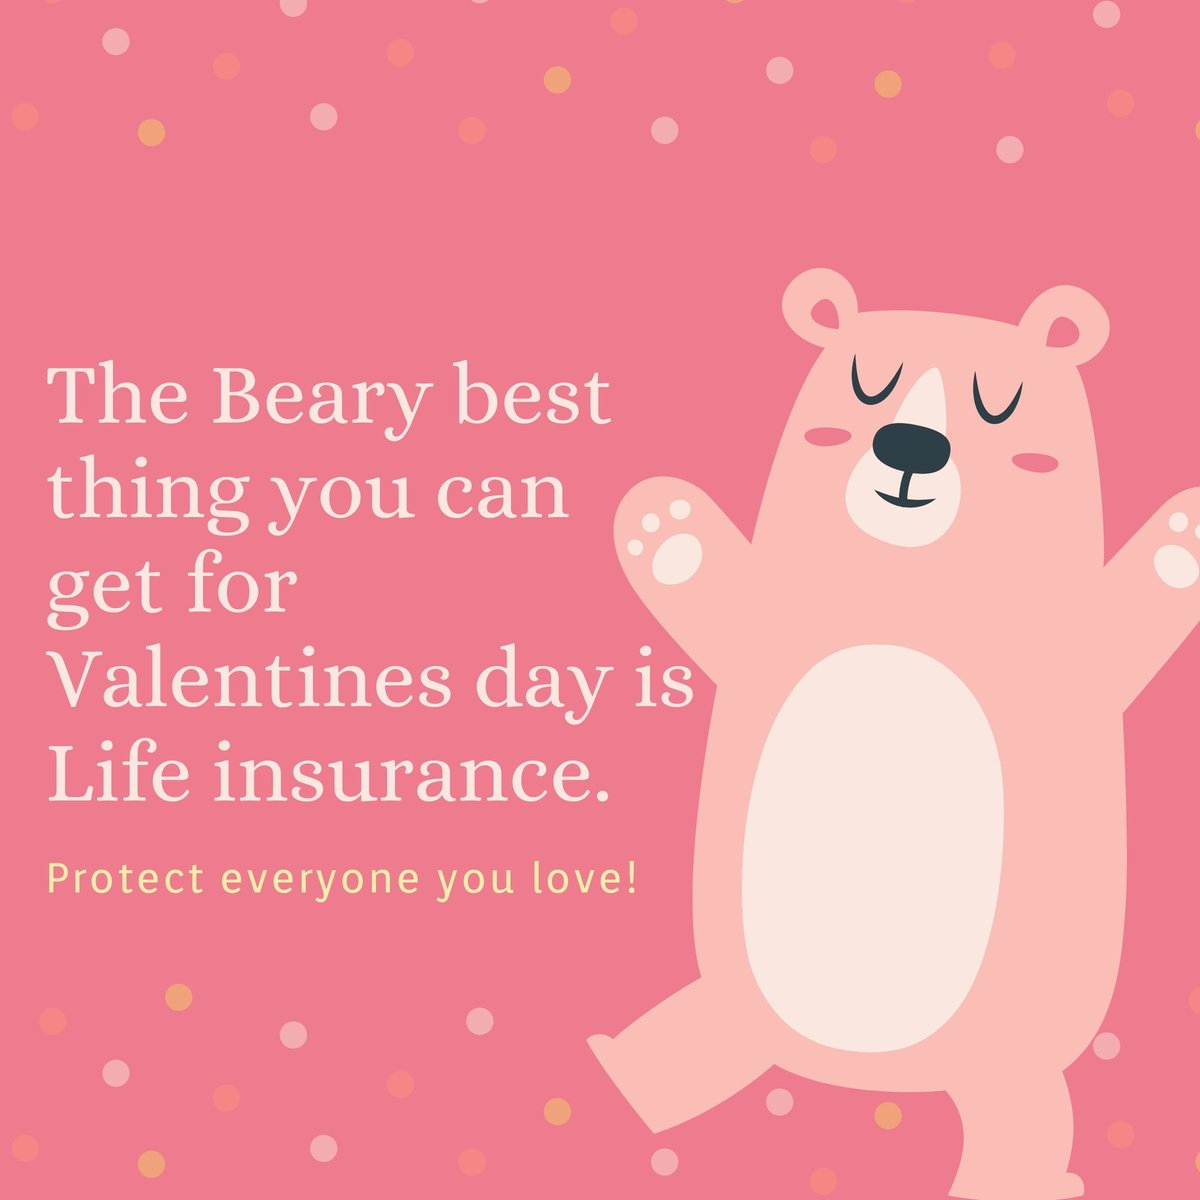 Family means everything to us & we wouldn't be looking out for you if we didn't make sure your family was beary secure.   Give me a call so we can tailor the right life insurance policy for you.   Boardman: 330.782.6100 Cleveland: 440.461.1155  #MonicaHoskinsAgency #Family #AmFam